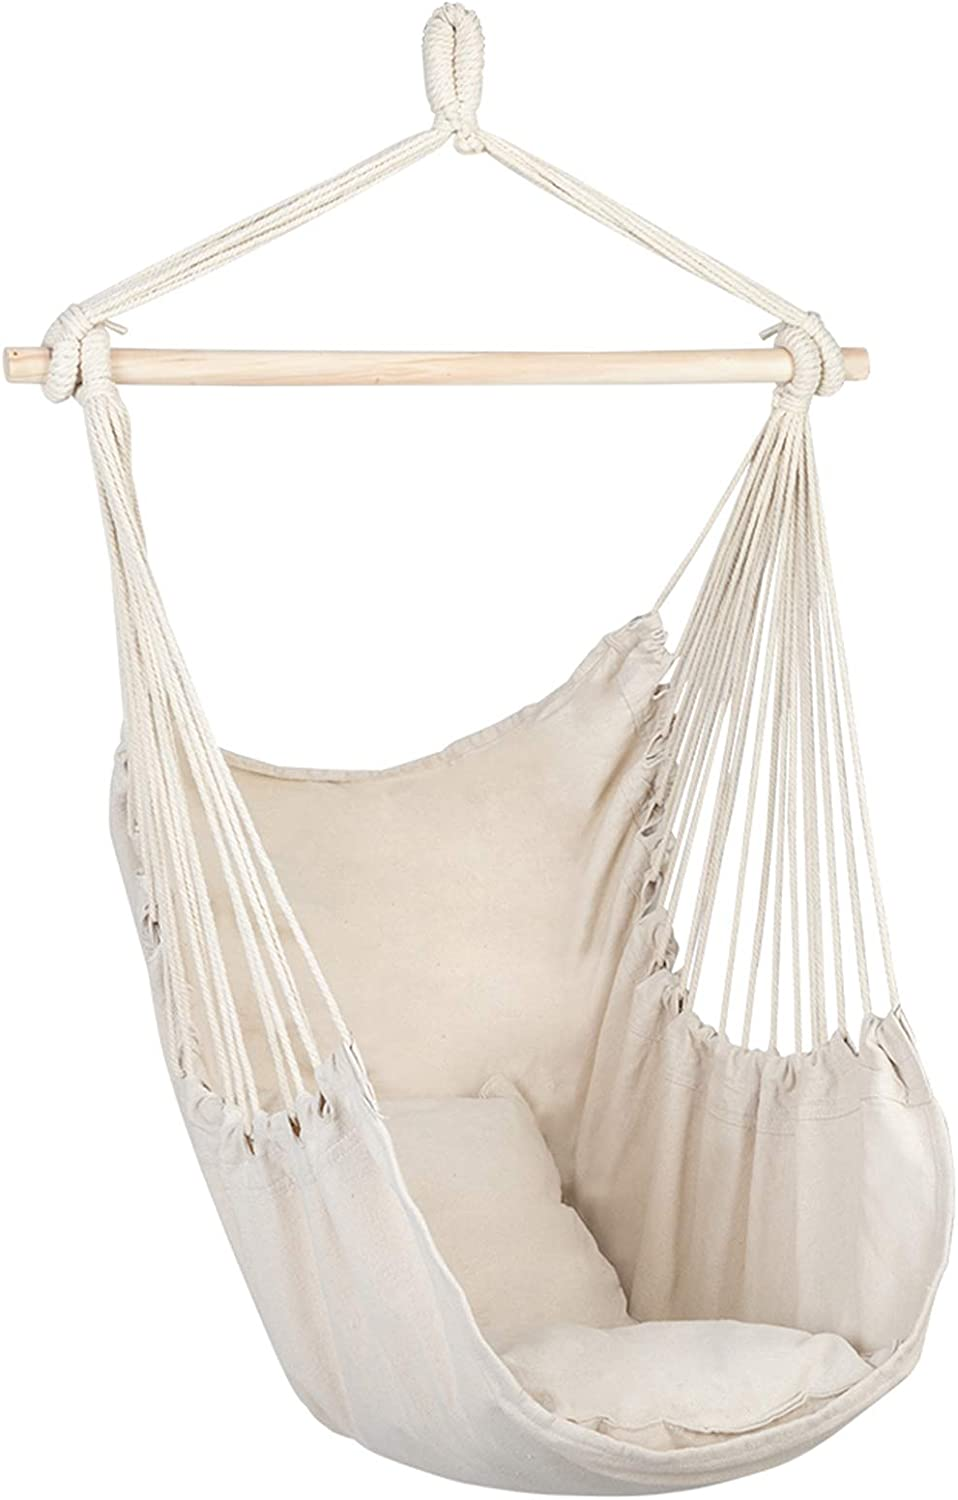 Hanging Limited time sale Rope Chair New York Mall with 2 Hammock Seat Pillows Porch Swing